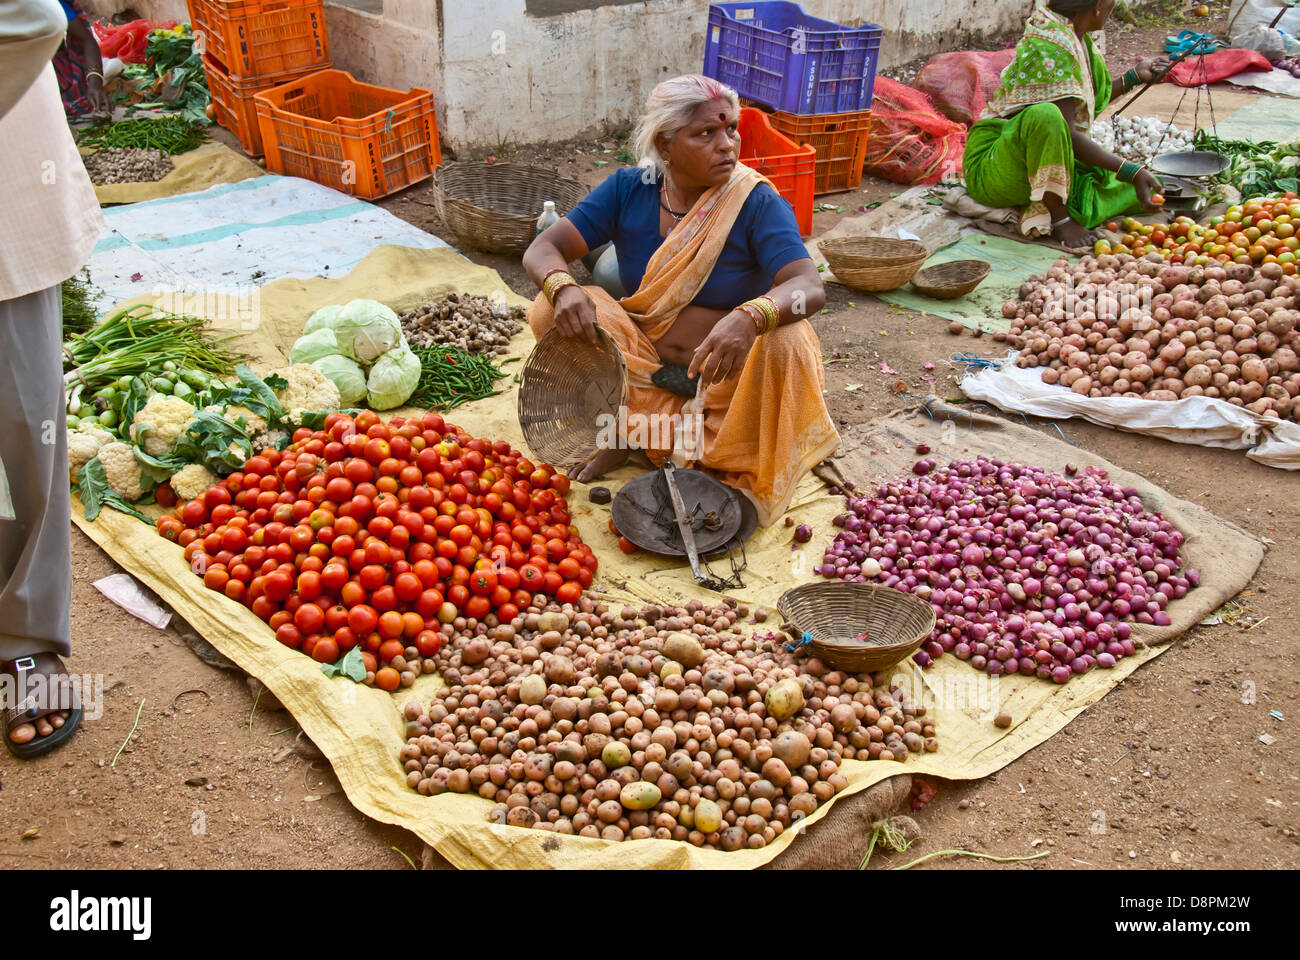 Indian open-air vegetable market in Mocha Village, Madya Pradesh, India - Stock Image